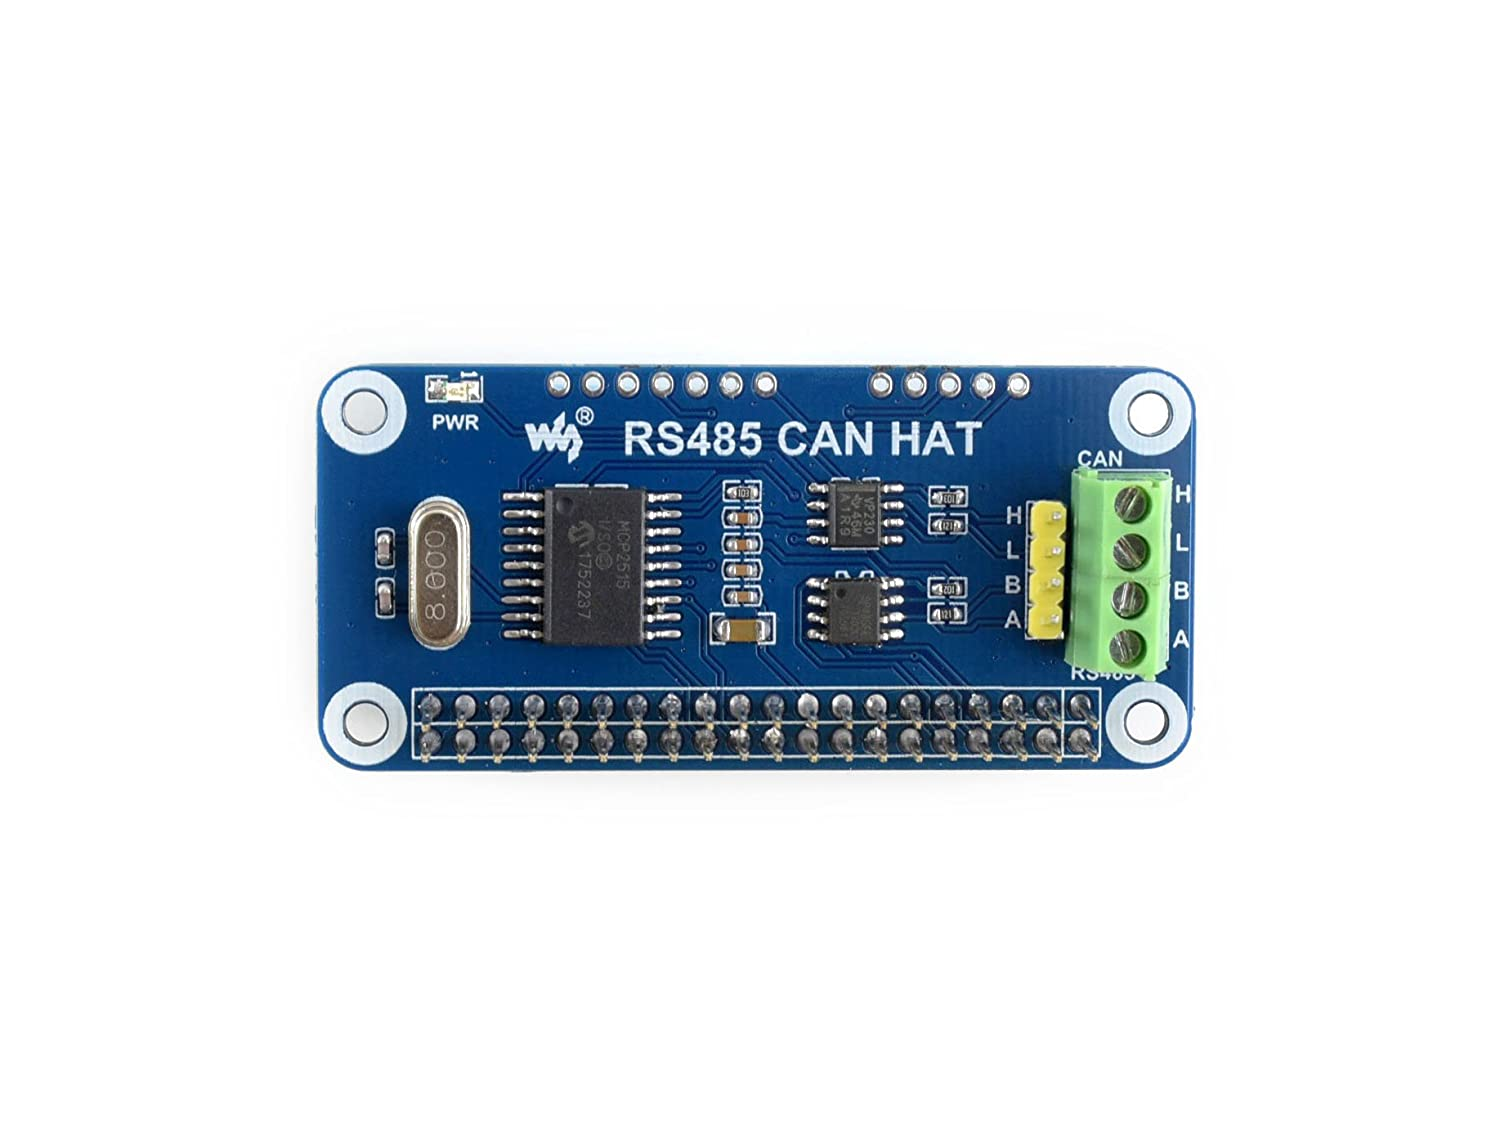 Waveshare Rs485 Can Hat For Raspberry Pi Function And Wiringpi Python Functions On Board Allows To Communicate With Other Devices Stably In Long Distance